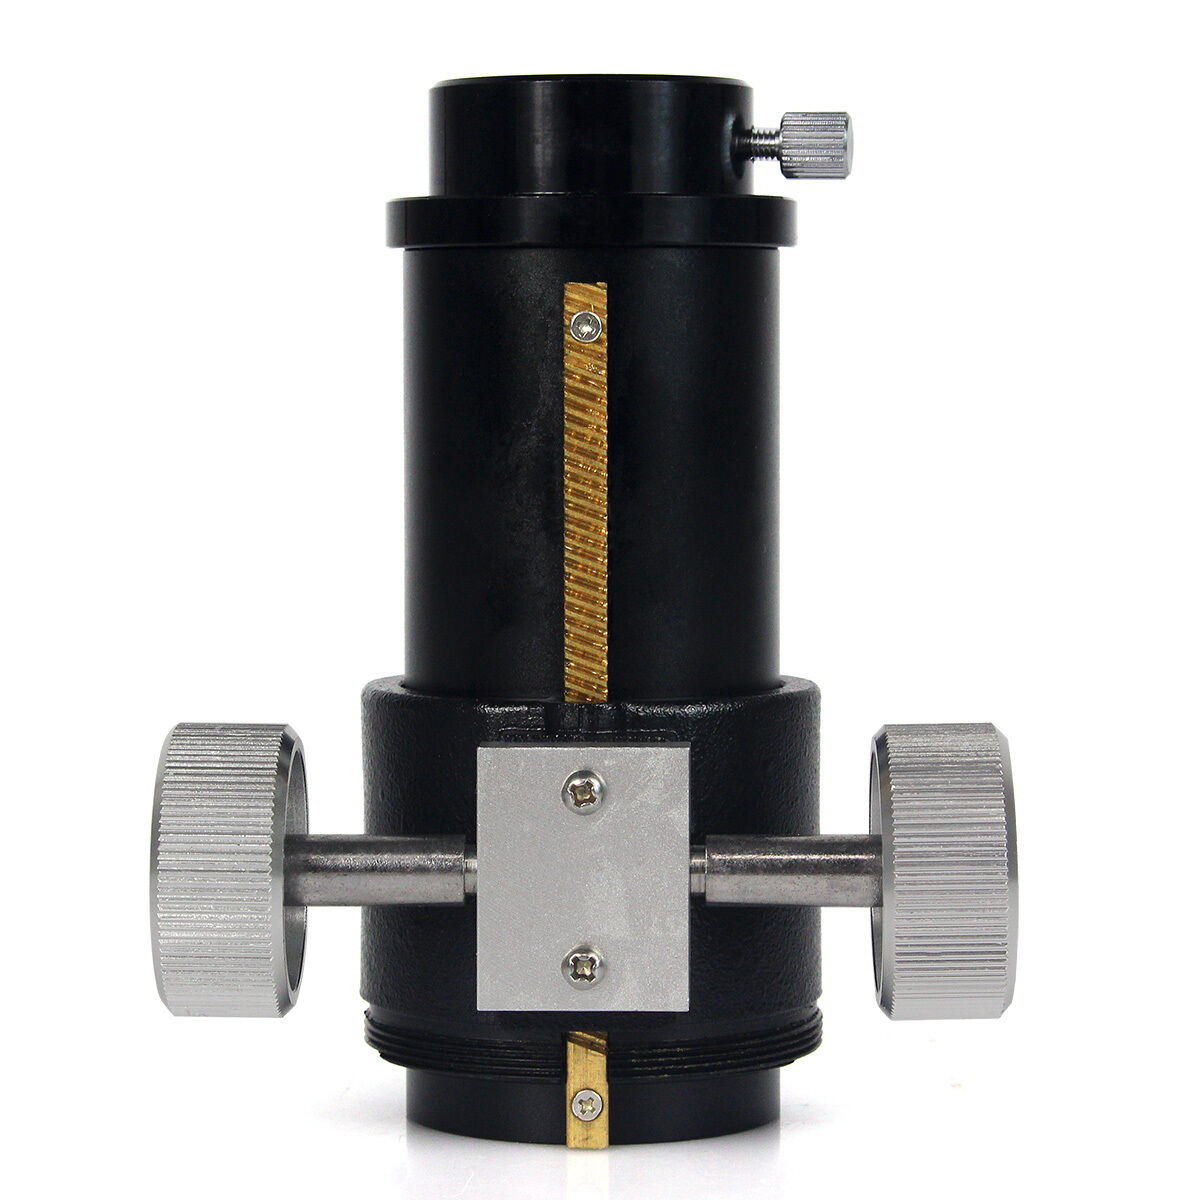 Details about Metal 1 25inch R&P Astronomy Telescope Focuser Rack Pinion  for Refraction Type